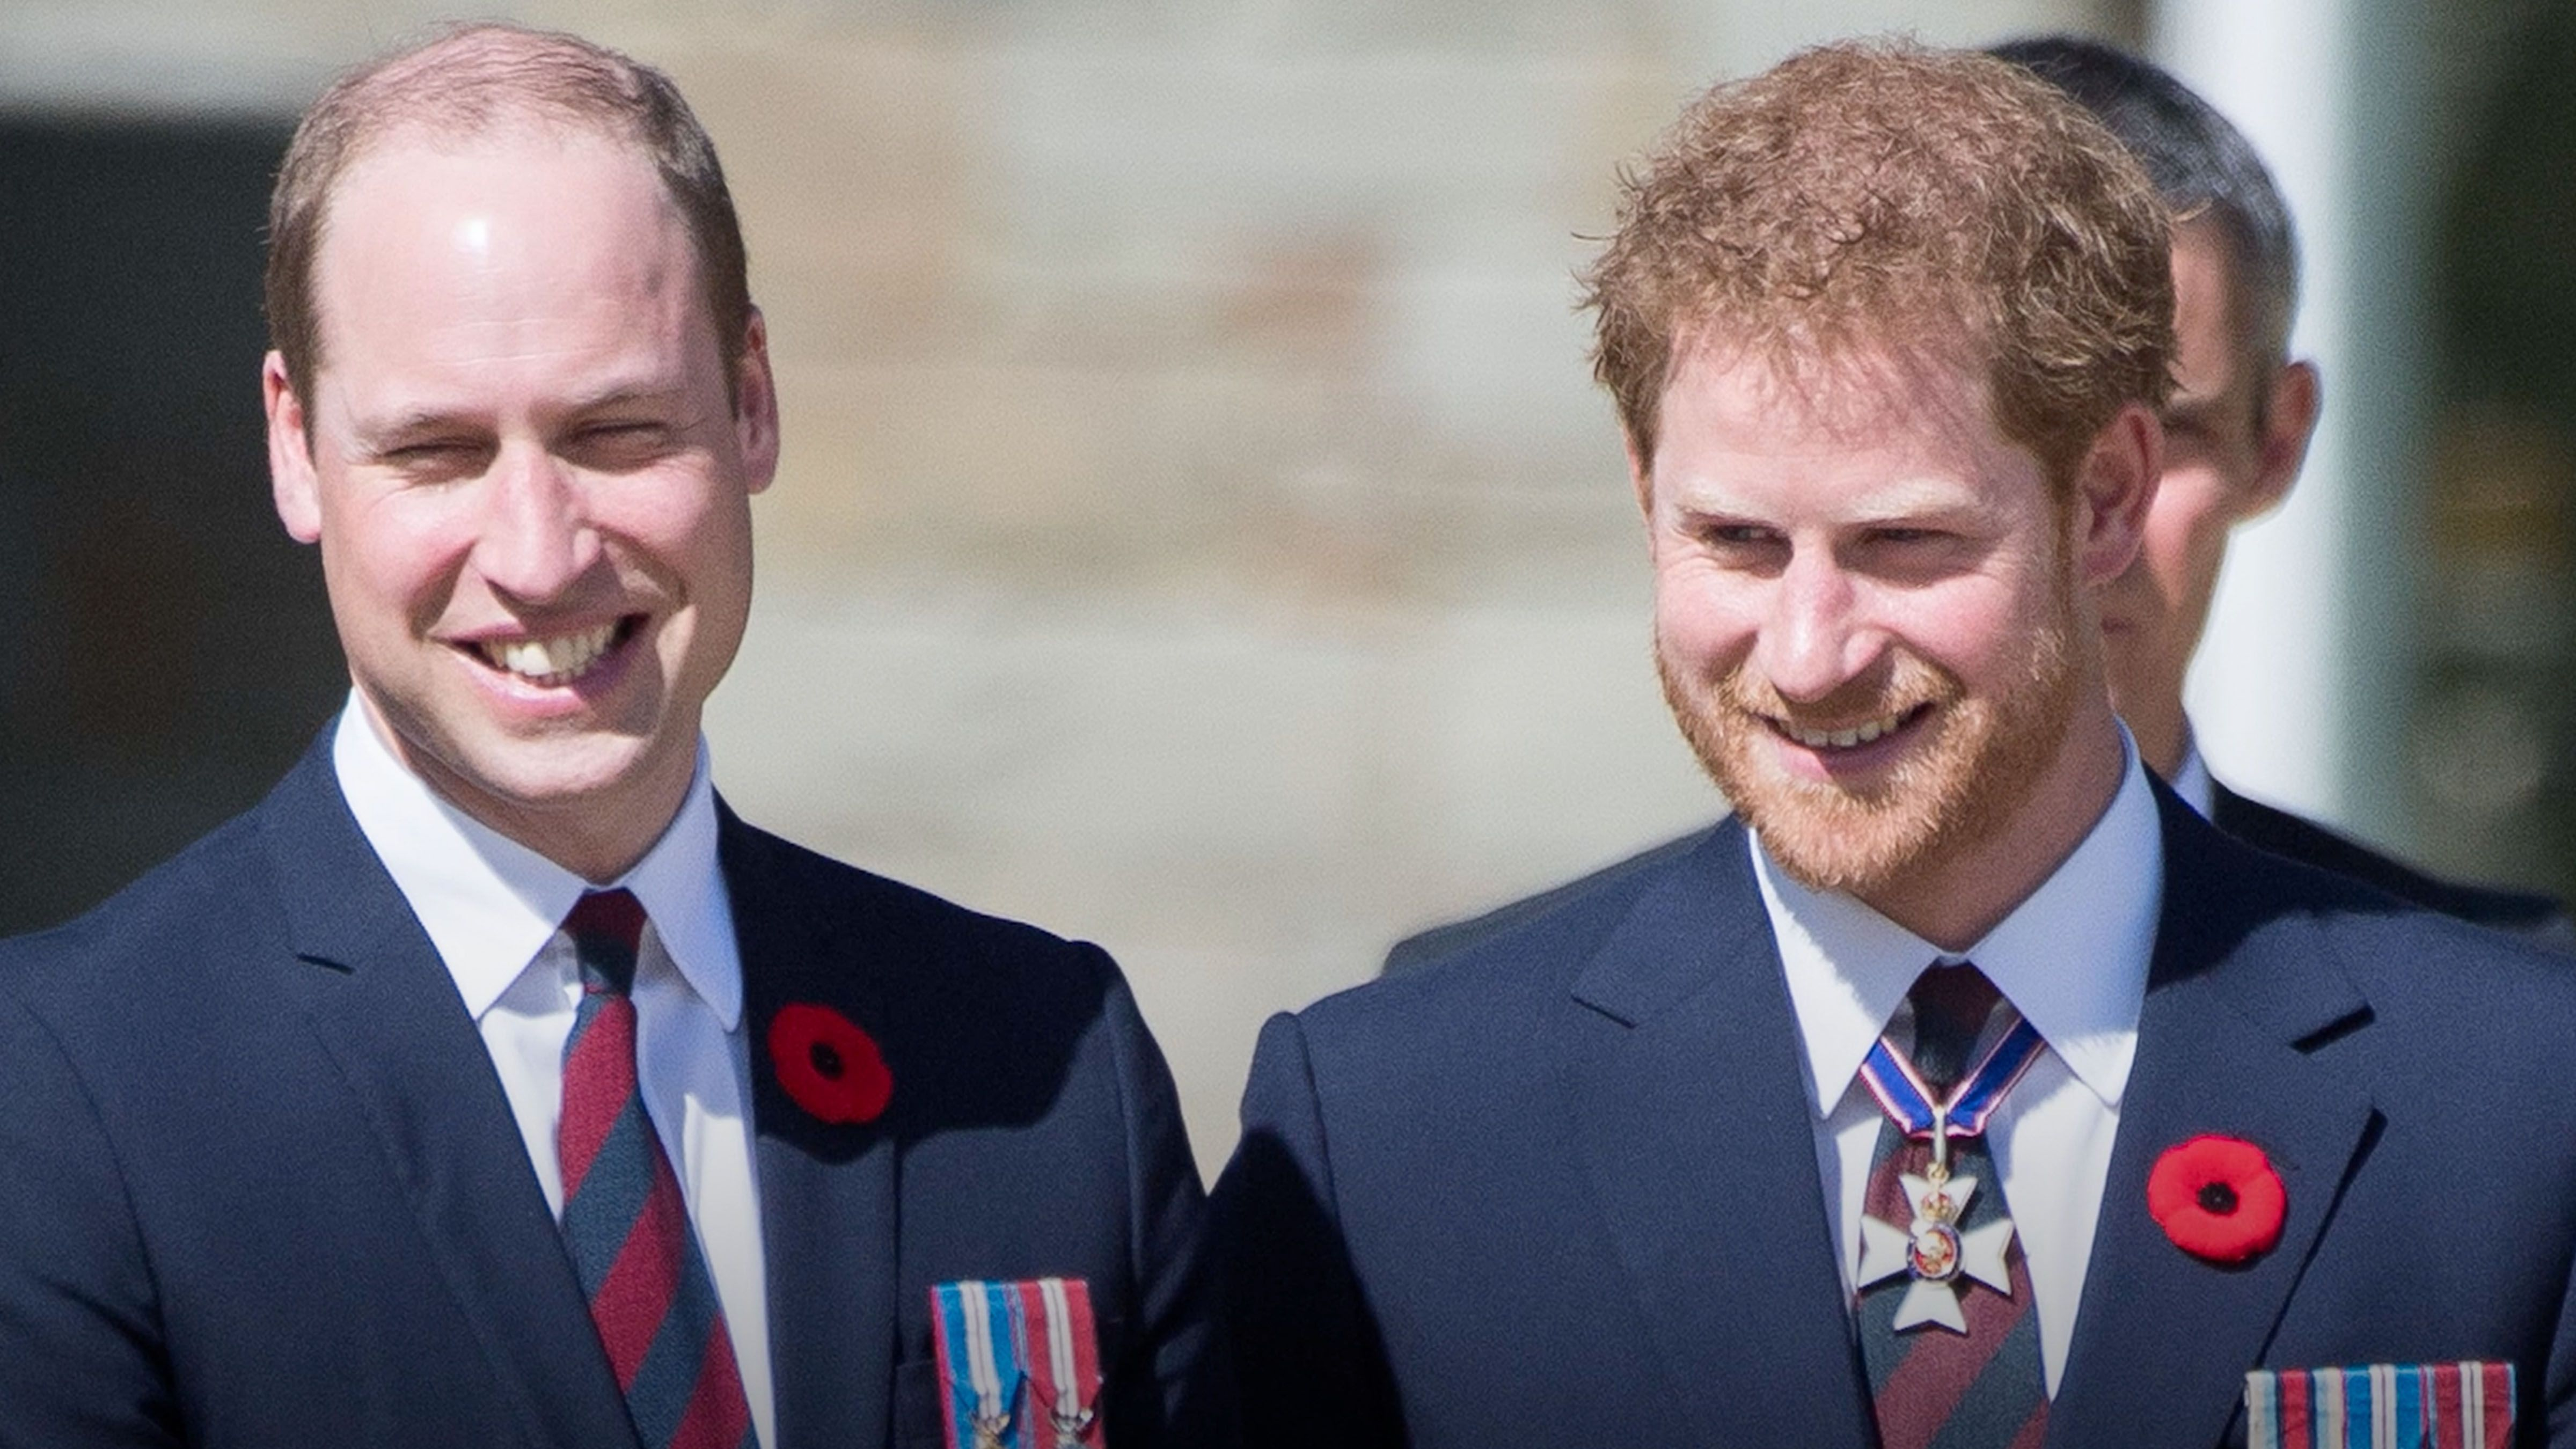 Twitter Reacts to Prince William Wearing a Sherwani During the Royal Tour of Pakistan